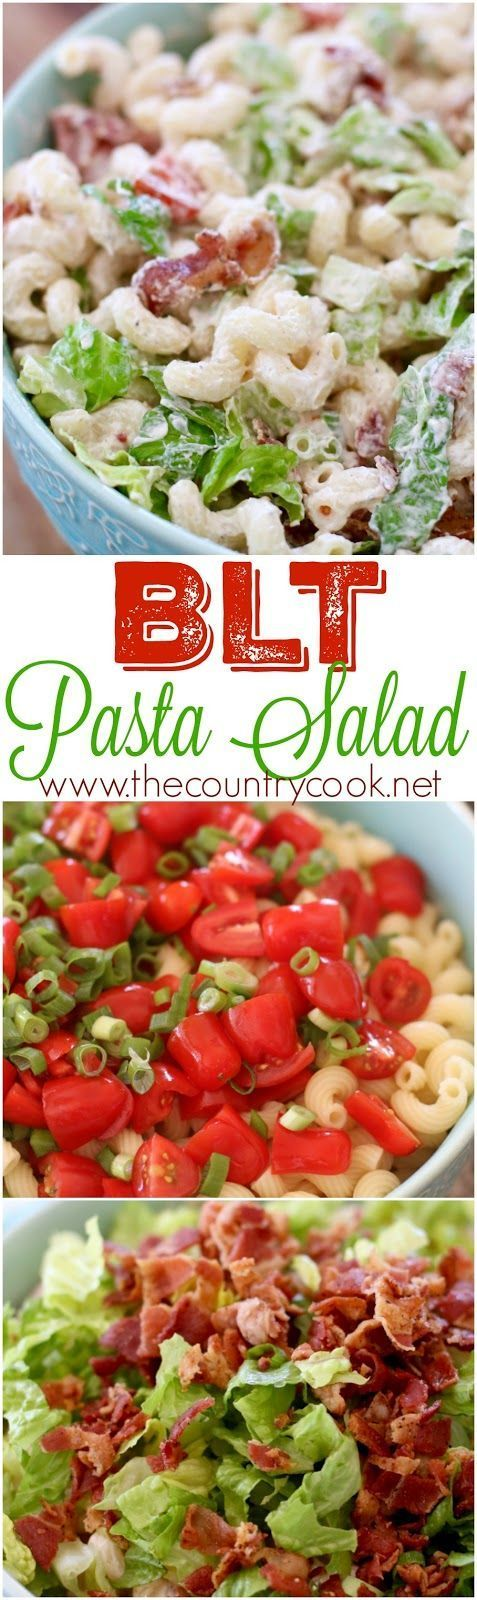 BLT Pasta Salad recipe at The Country Cook. Corkscrew pasta with lots of bacon and tomatoes and a yummy creamy dressing. Perfect for all those Memorial Day and Fourth of July barbecues and potlucks!